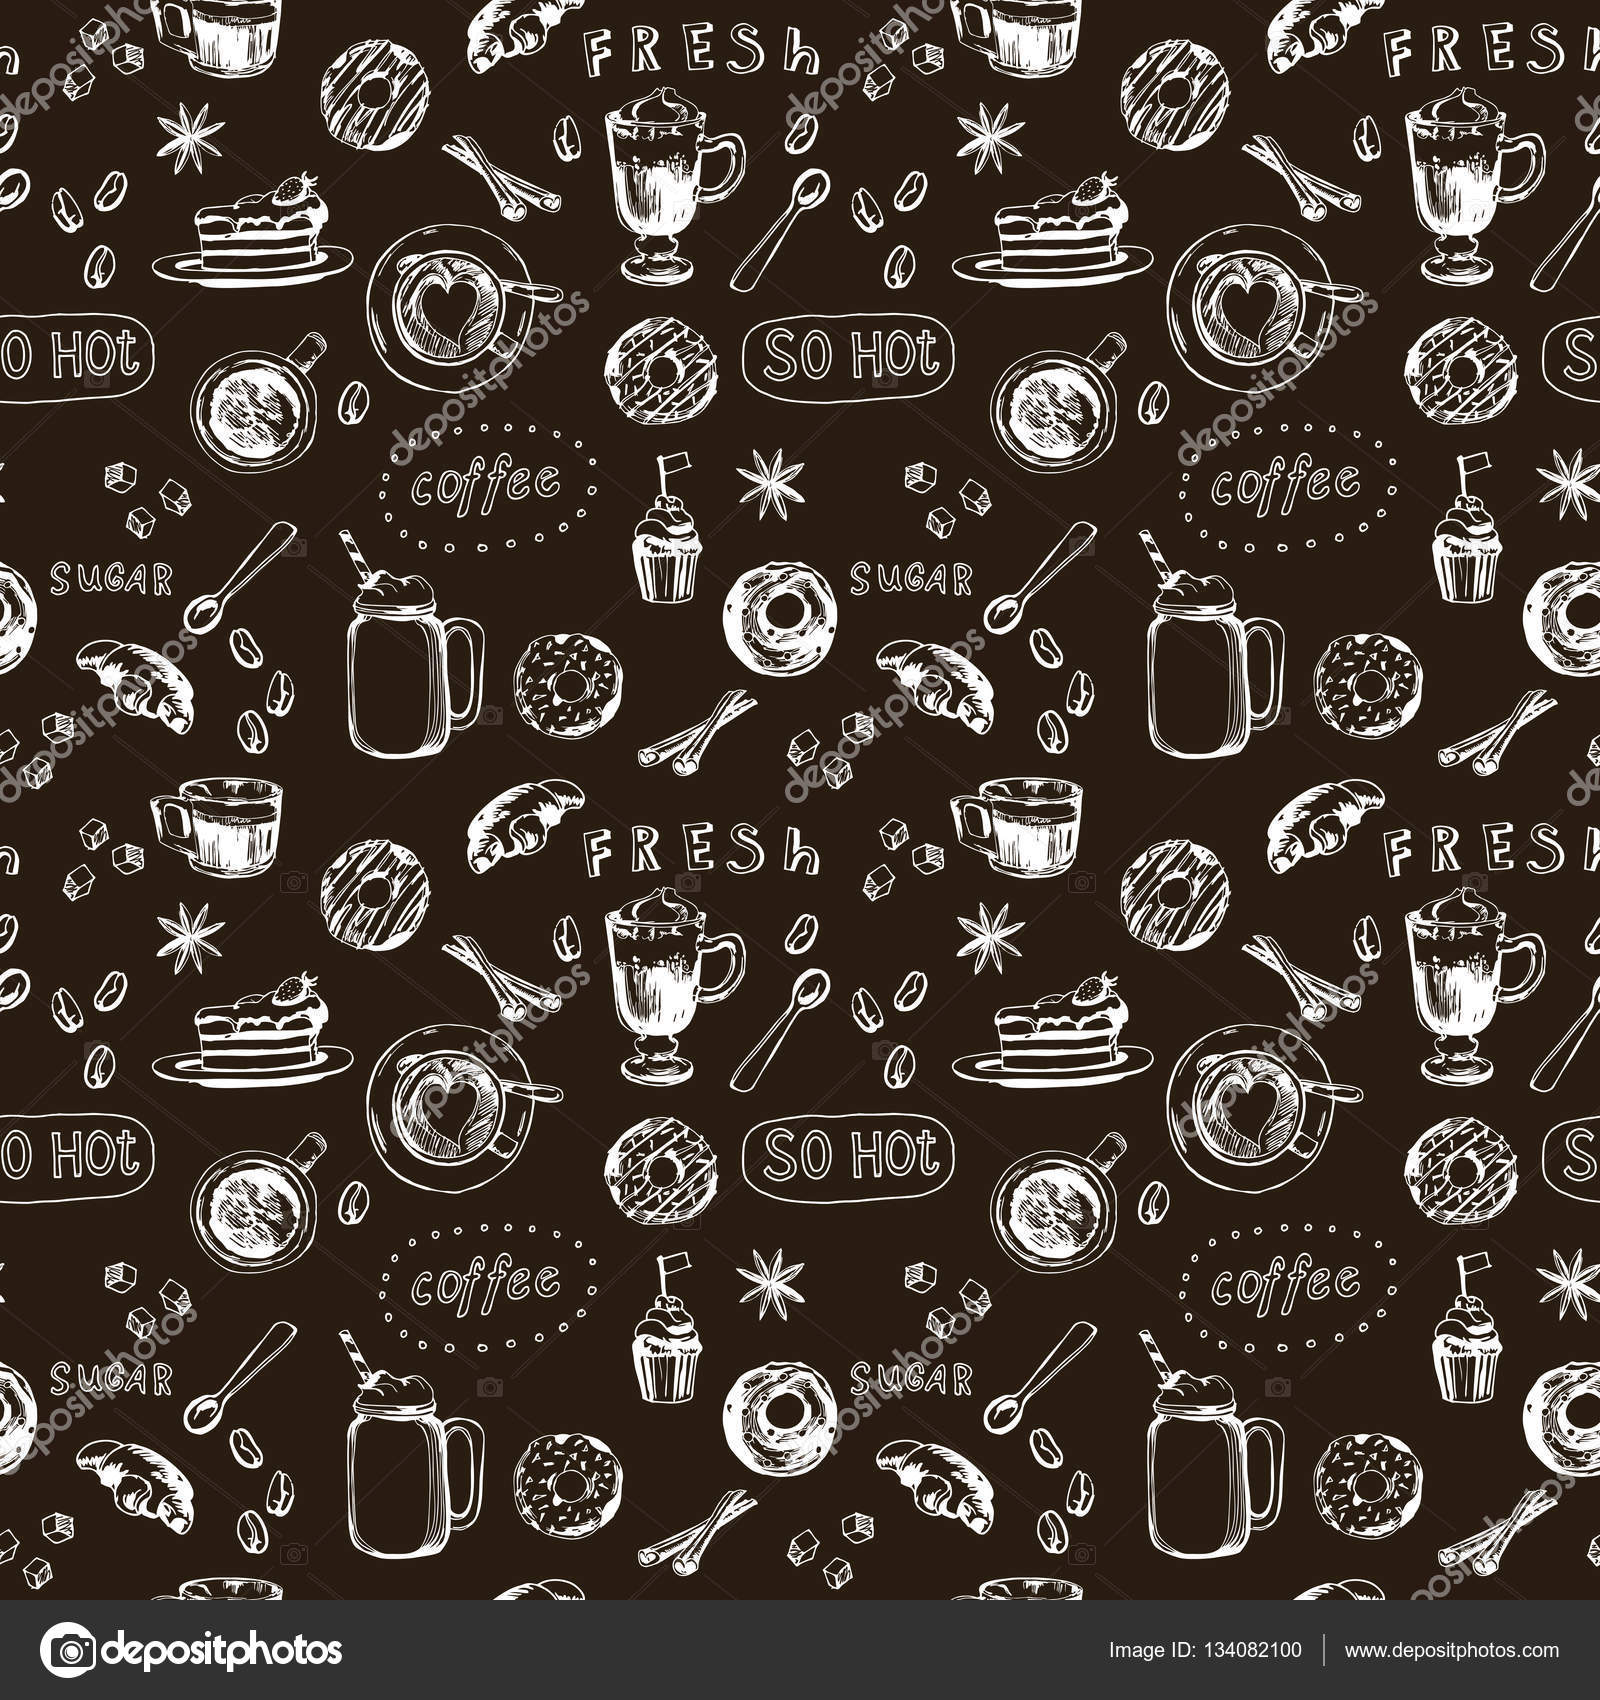 seamless doodle coffee pattern - photo #7